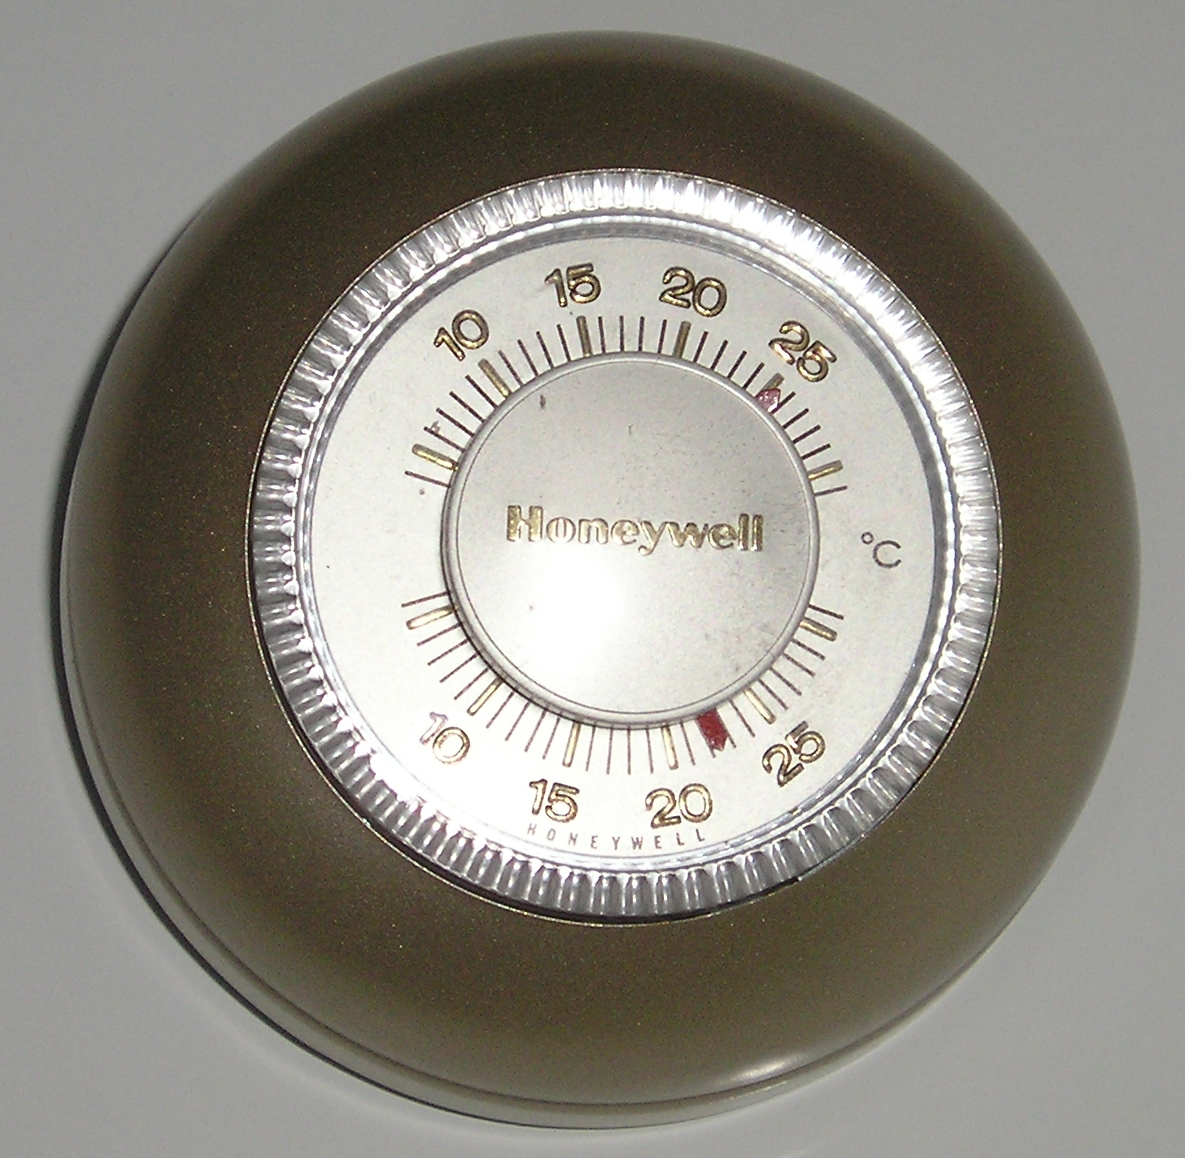 Filehoneywell Thermostat Wikimedia Commons Honeywell Ct3200 User Guide Manualsonlinecom